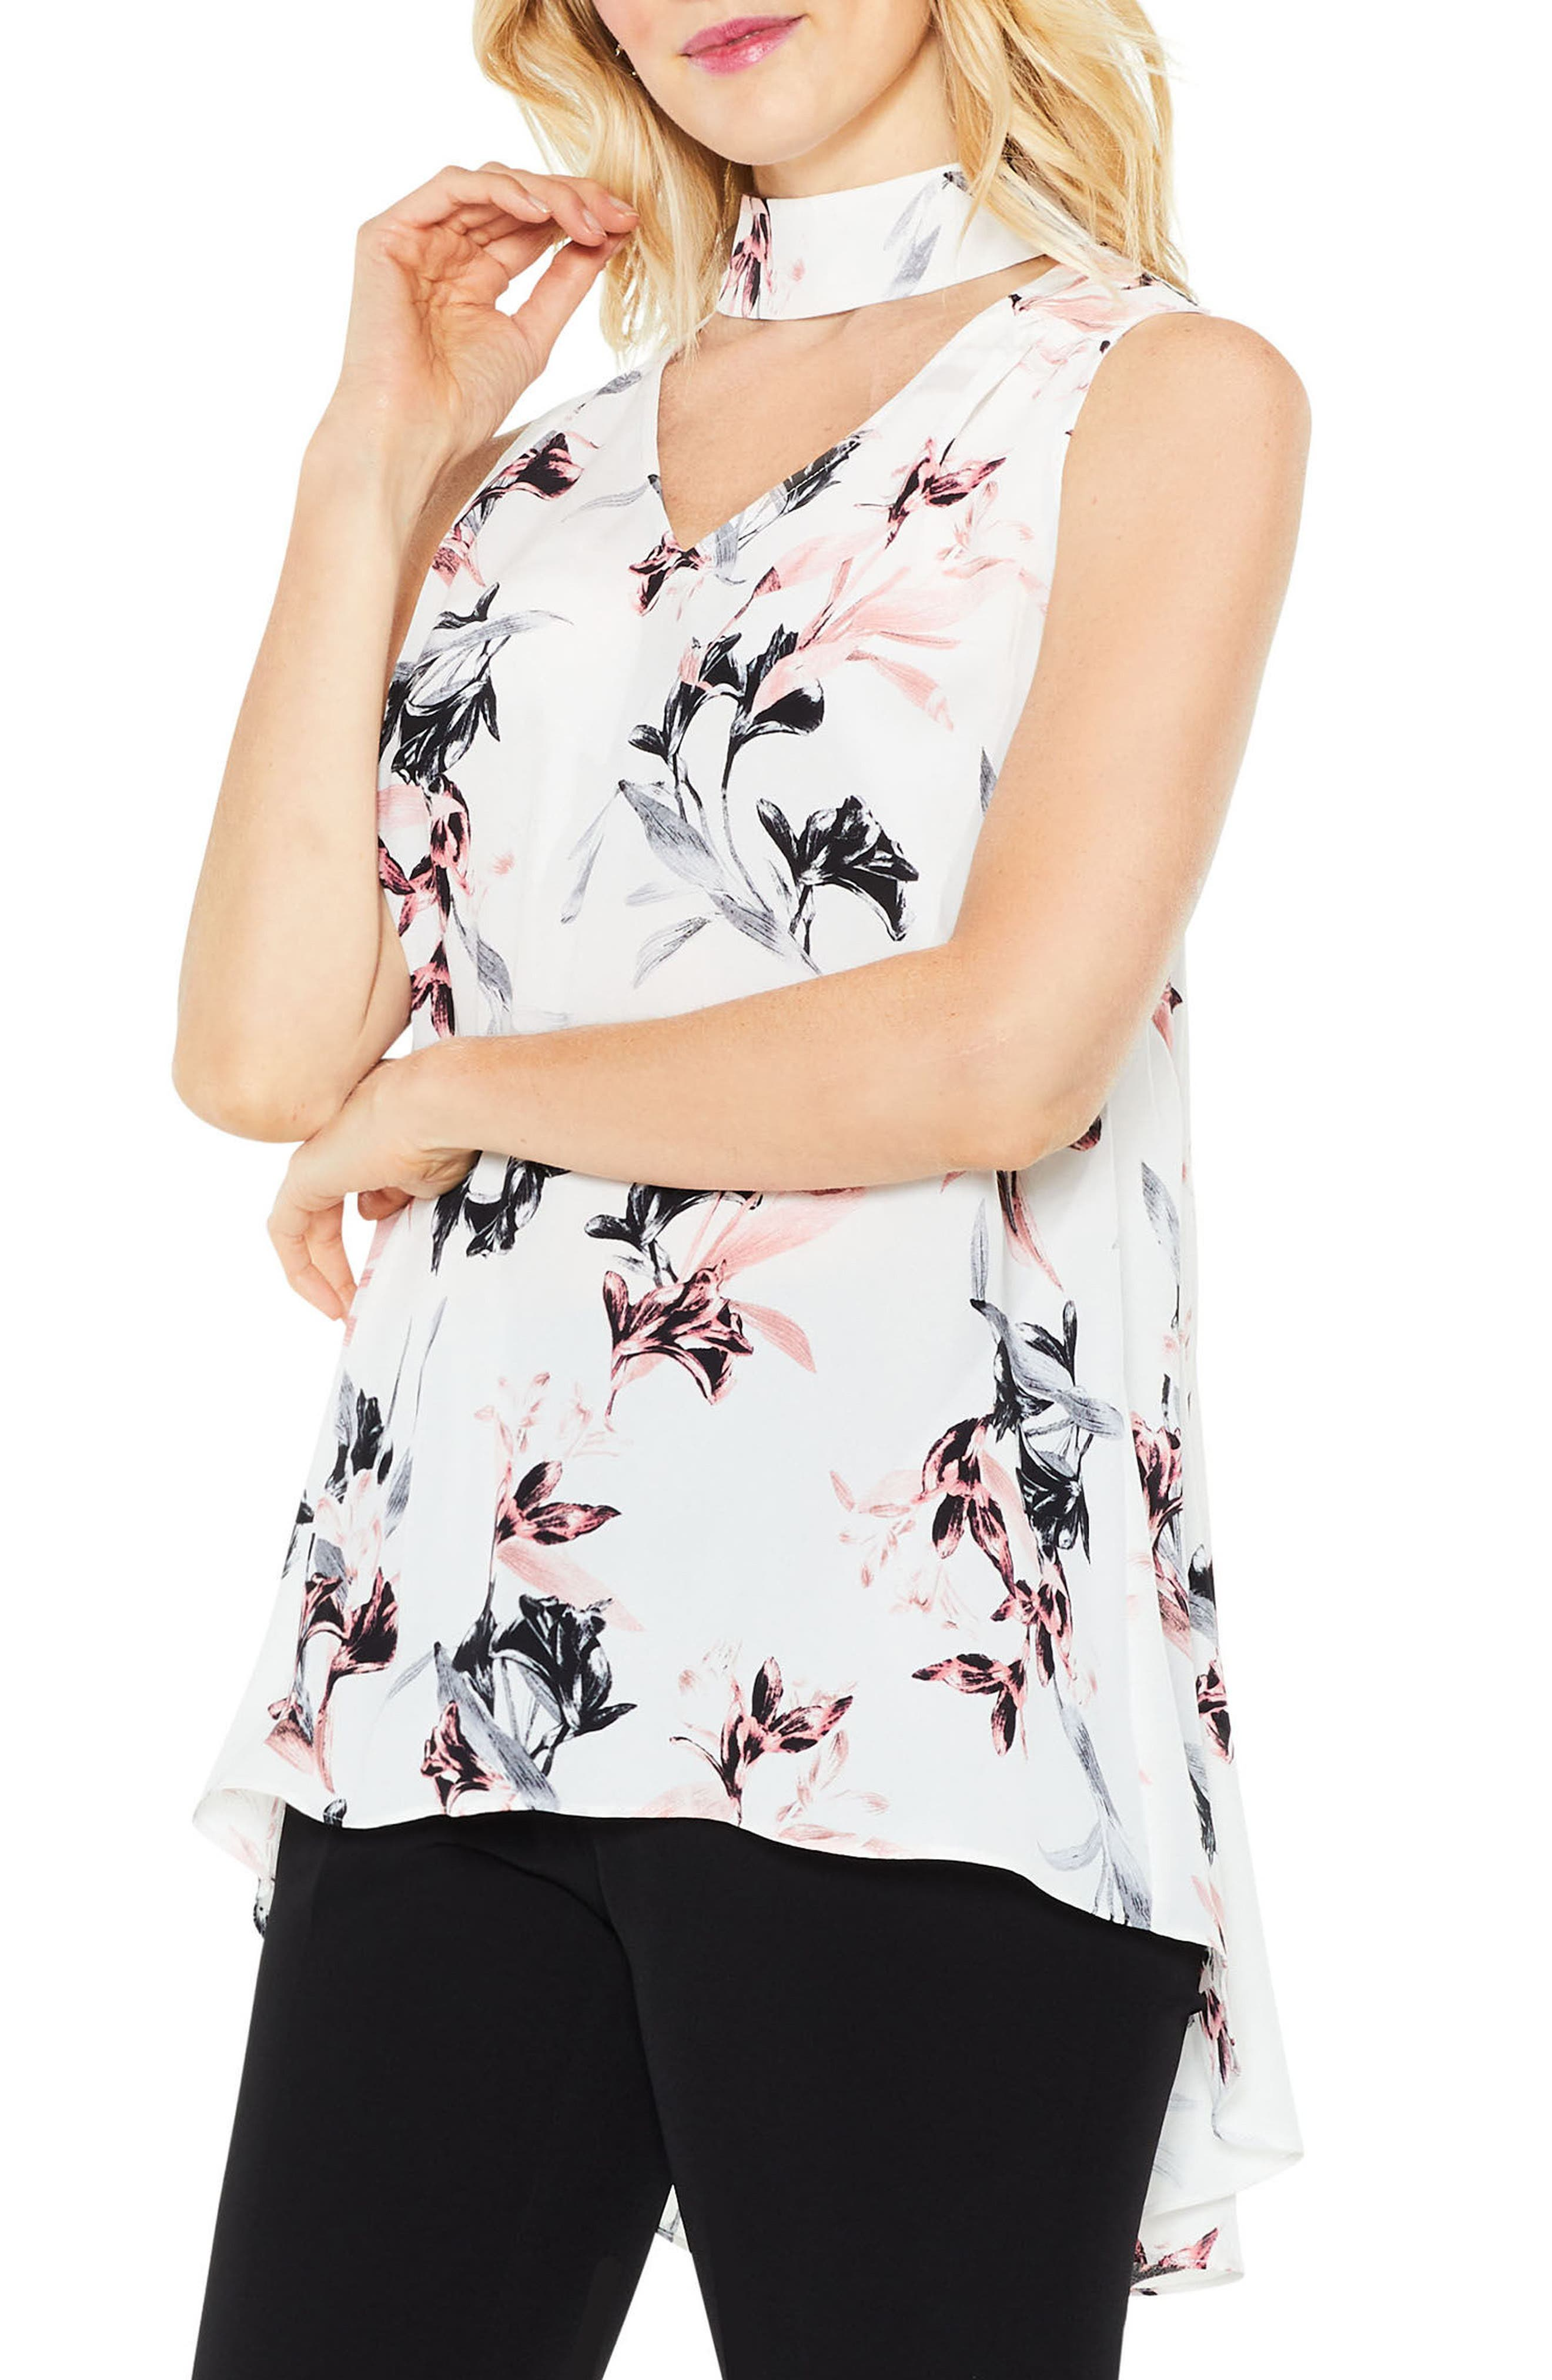 Lily Melody Choker Neck Blouse,                         Main,                         color, New Ivory